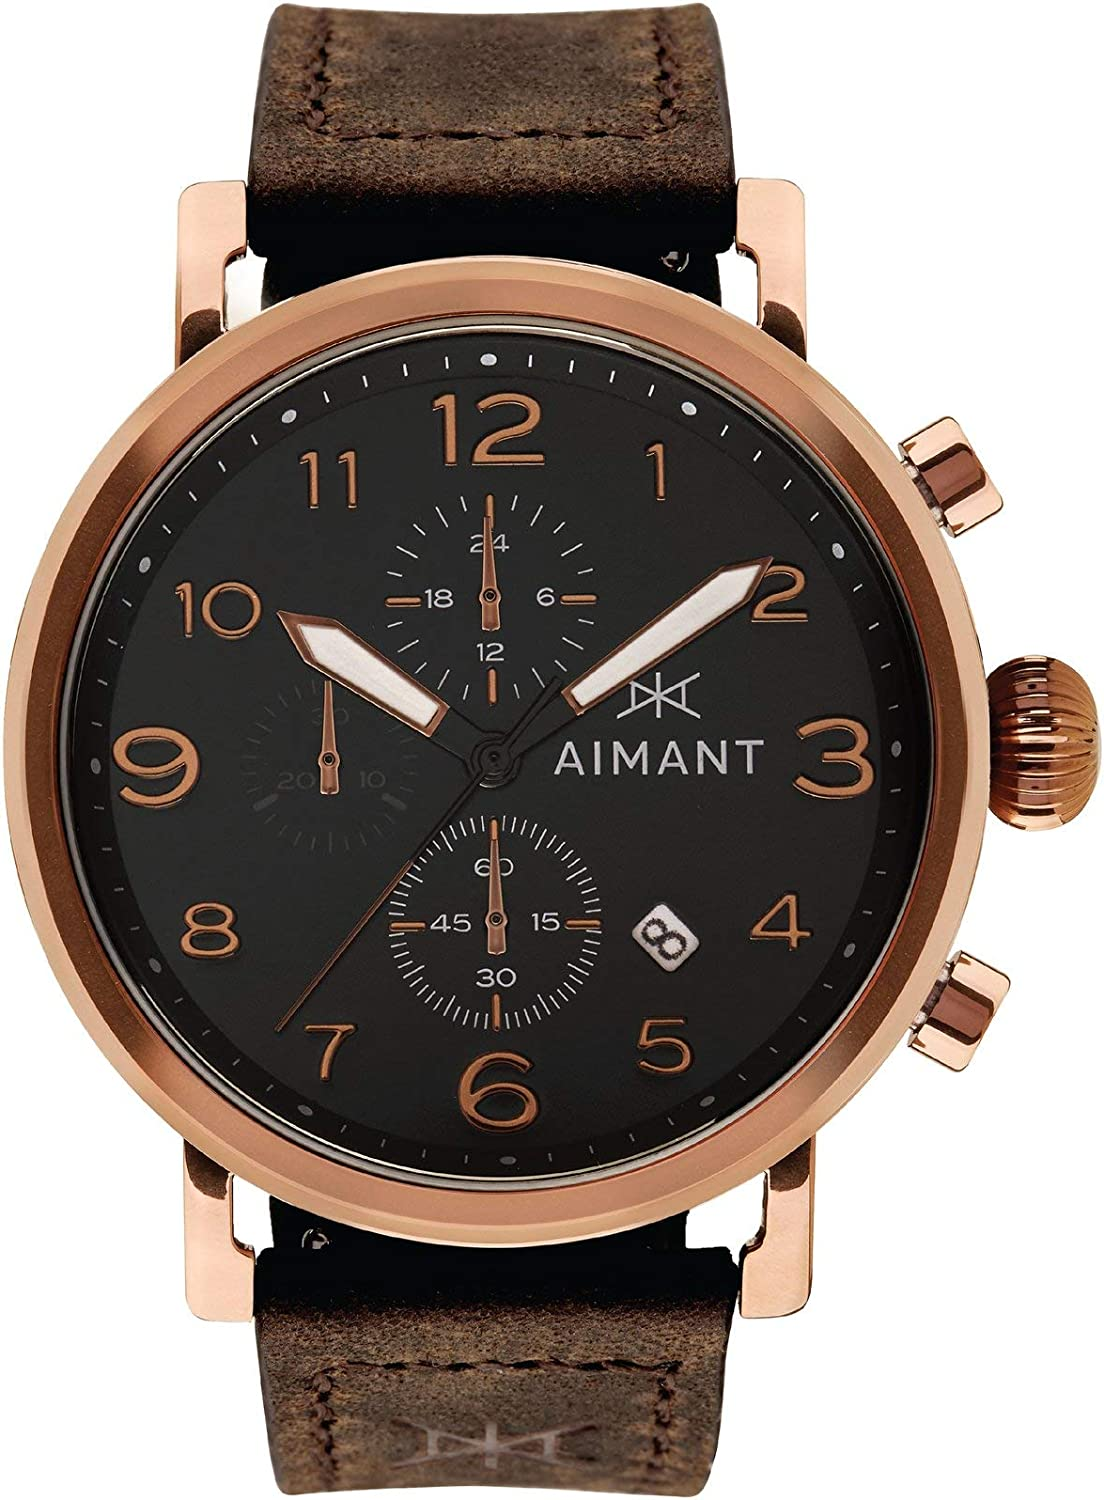 AIMANT Rotterdam Cronograph Watches : 44 MM Men's Analog Watch : Leather